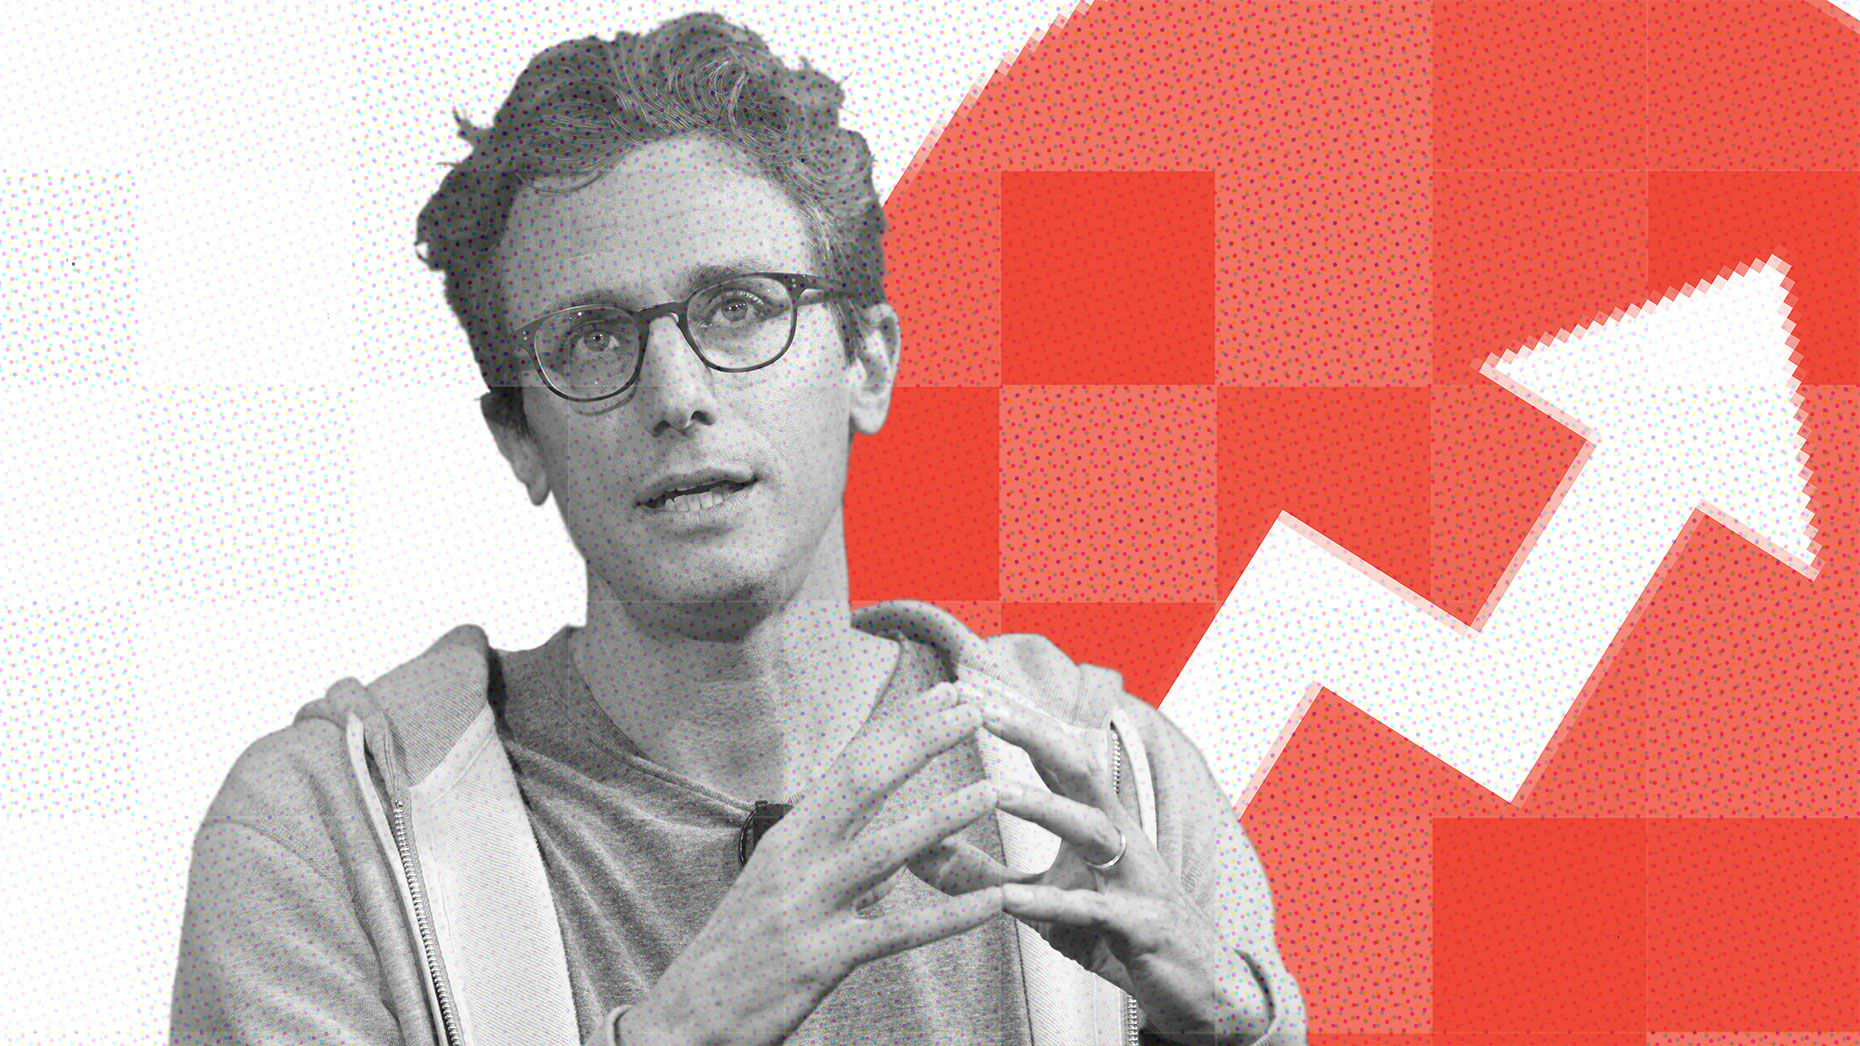 BuzzFeed CEO Jonah Peretti. Art by Mike Sullivan